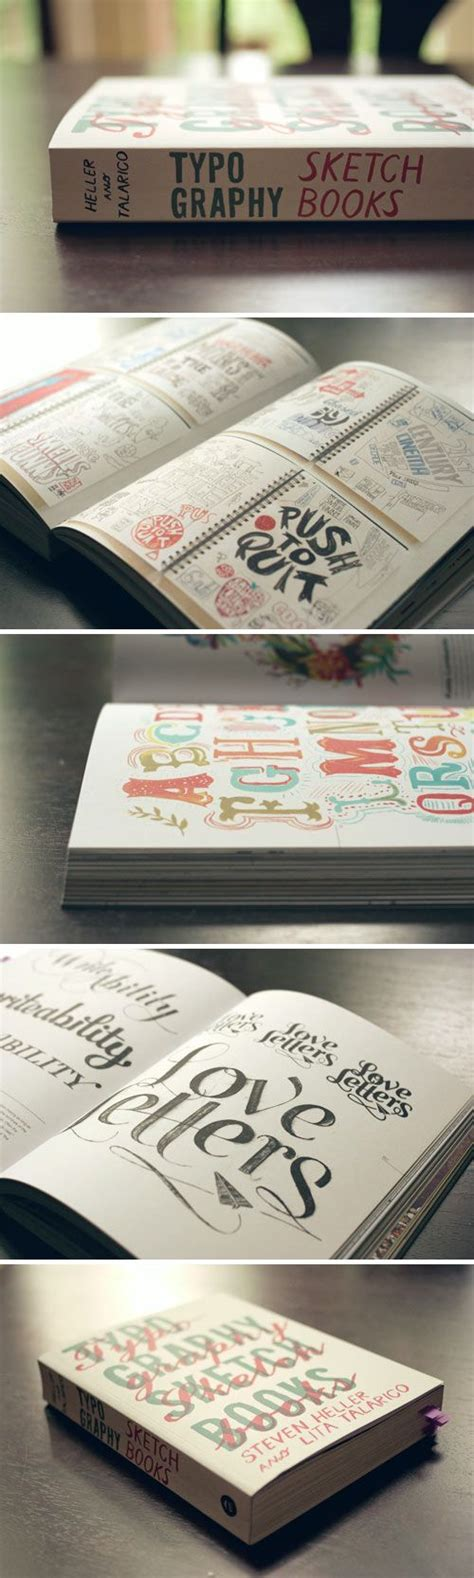 sketch book typo quotes typo typography sketchbooks codesign